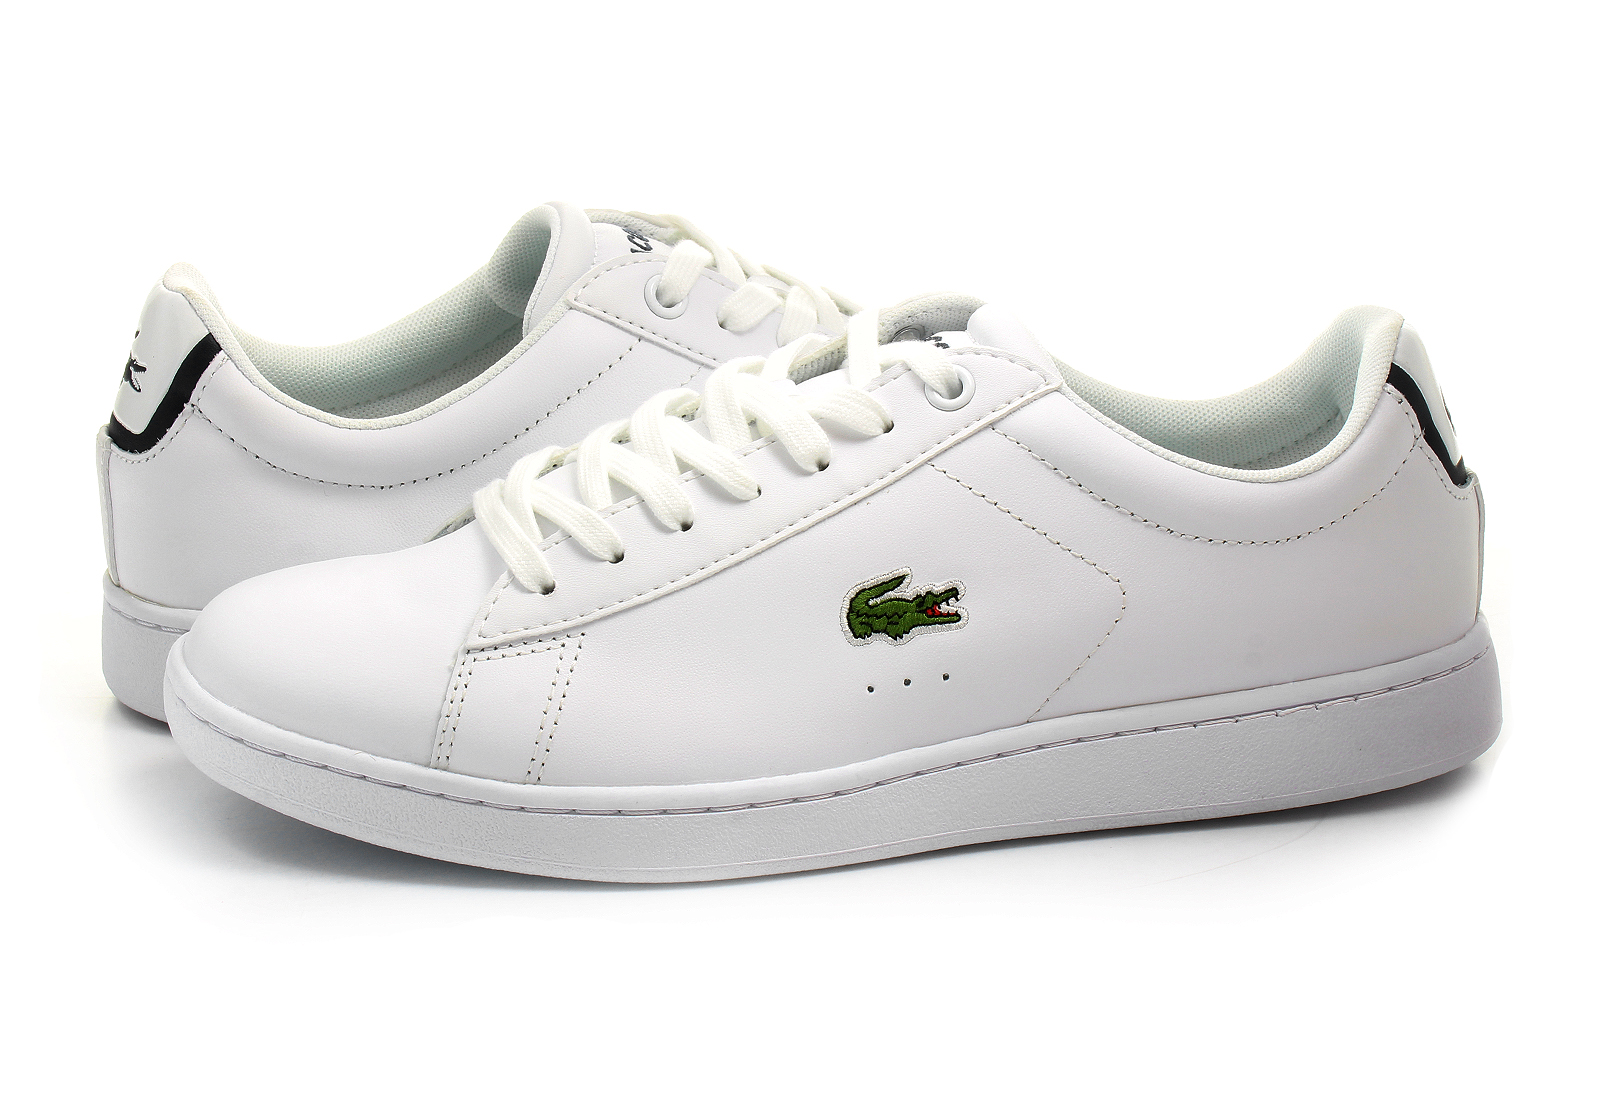 Lacoste Cipő - Carnaby Evo - 171spm1002-001 - Office Shoes ... a84387ef83